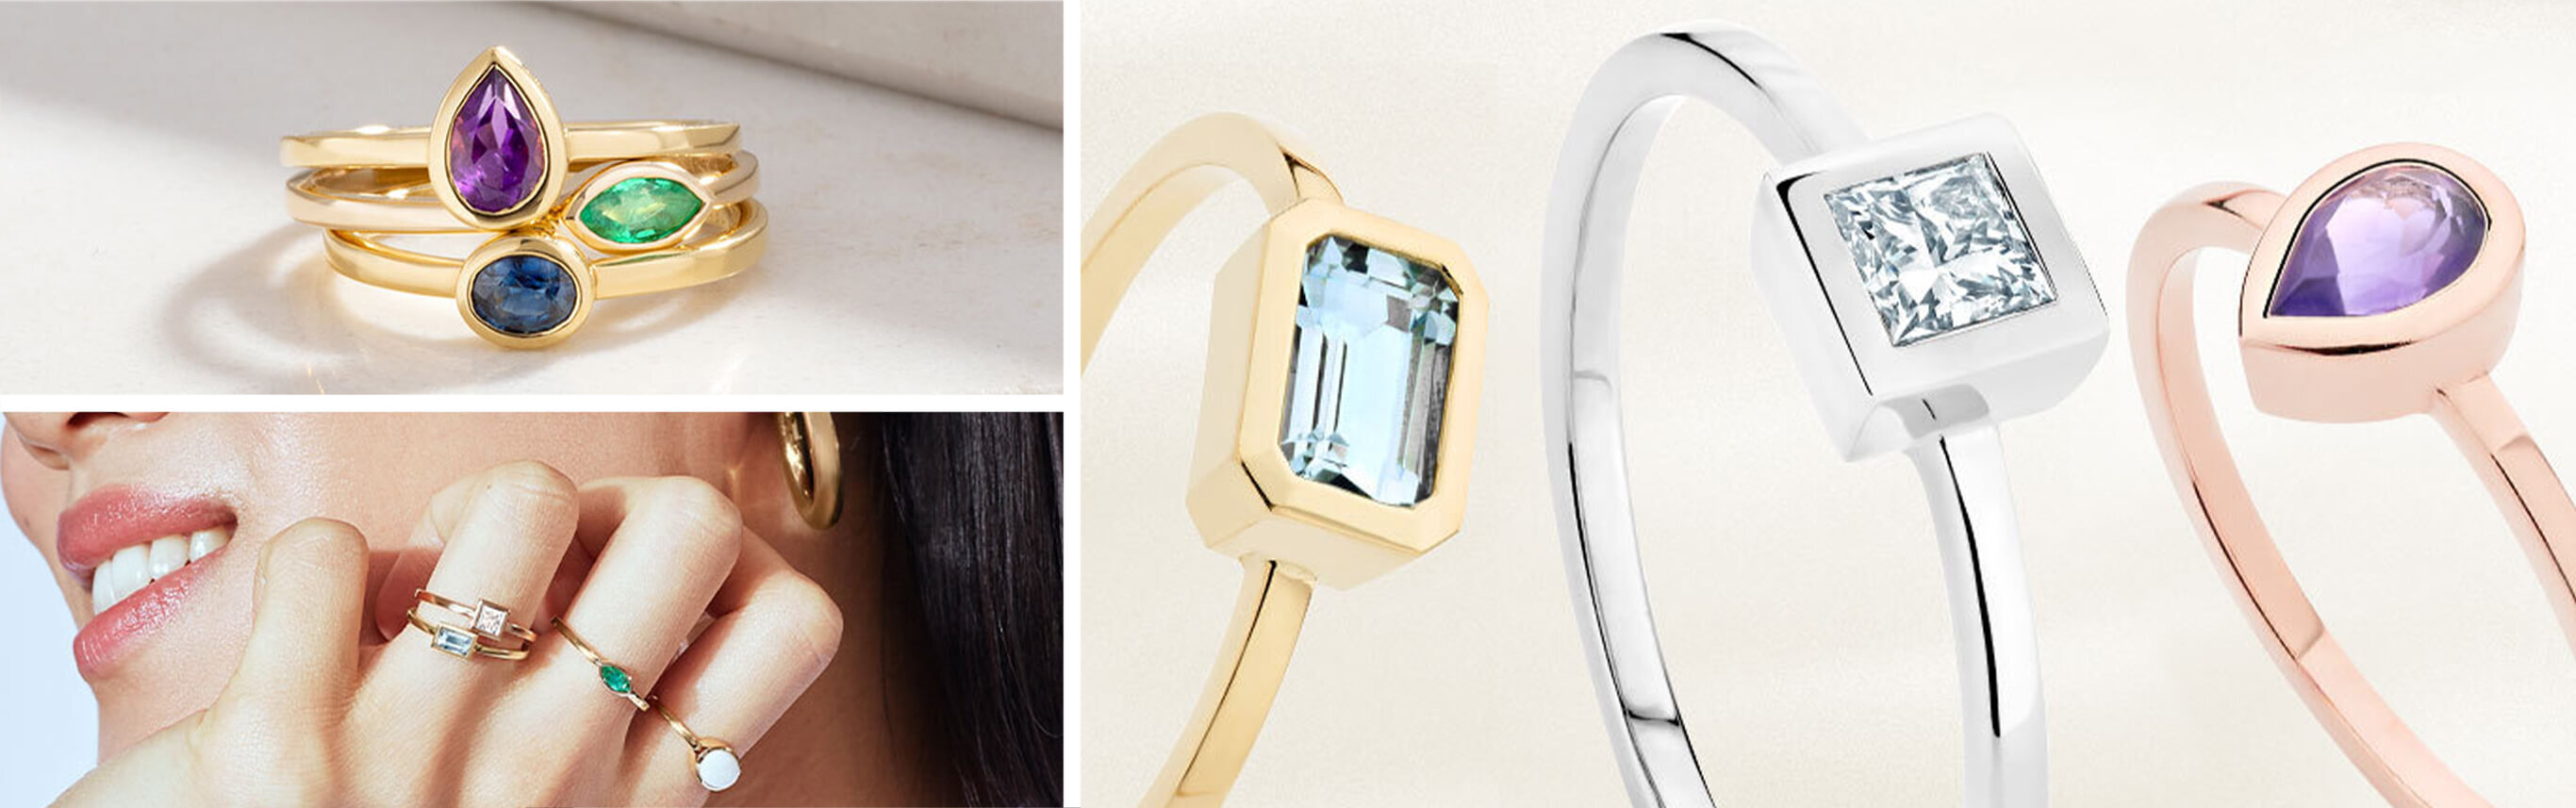 Jewellery Pieces from Ecksand's Showcase Collection